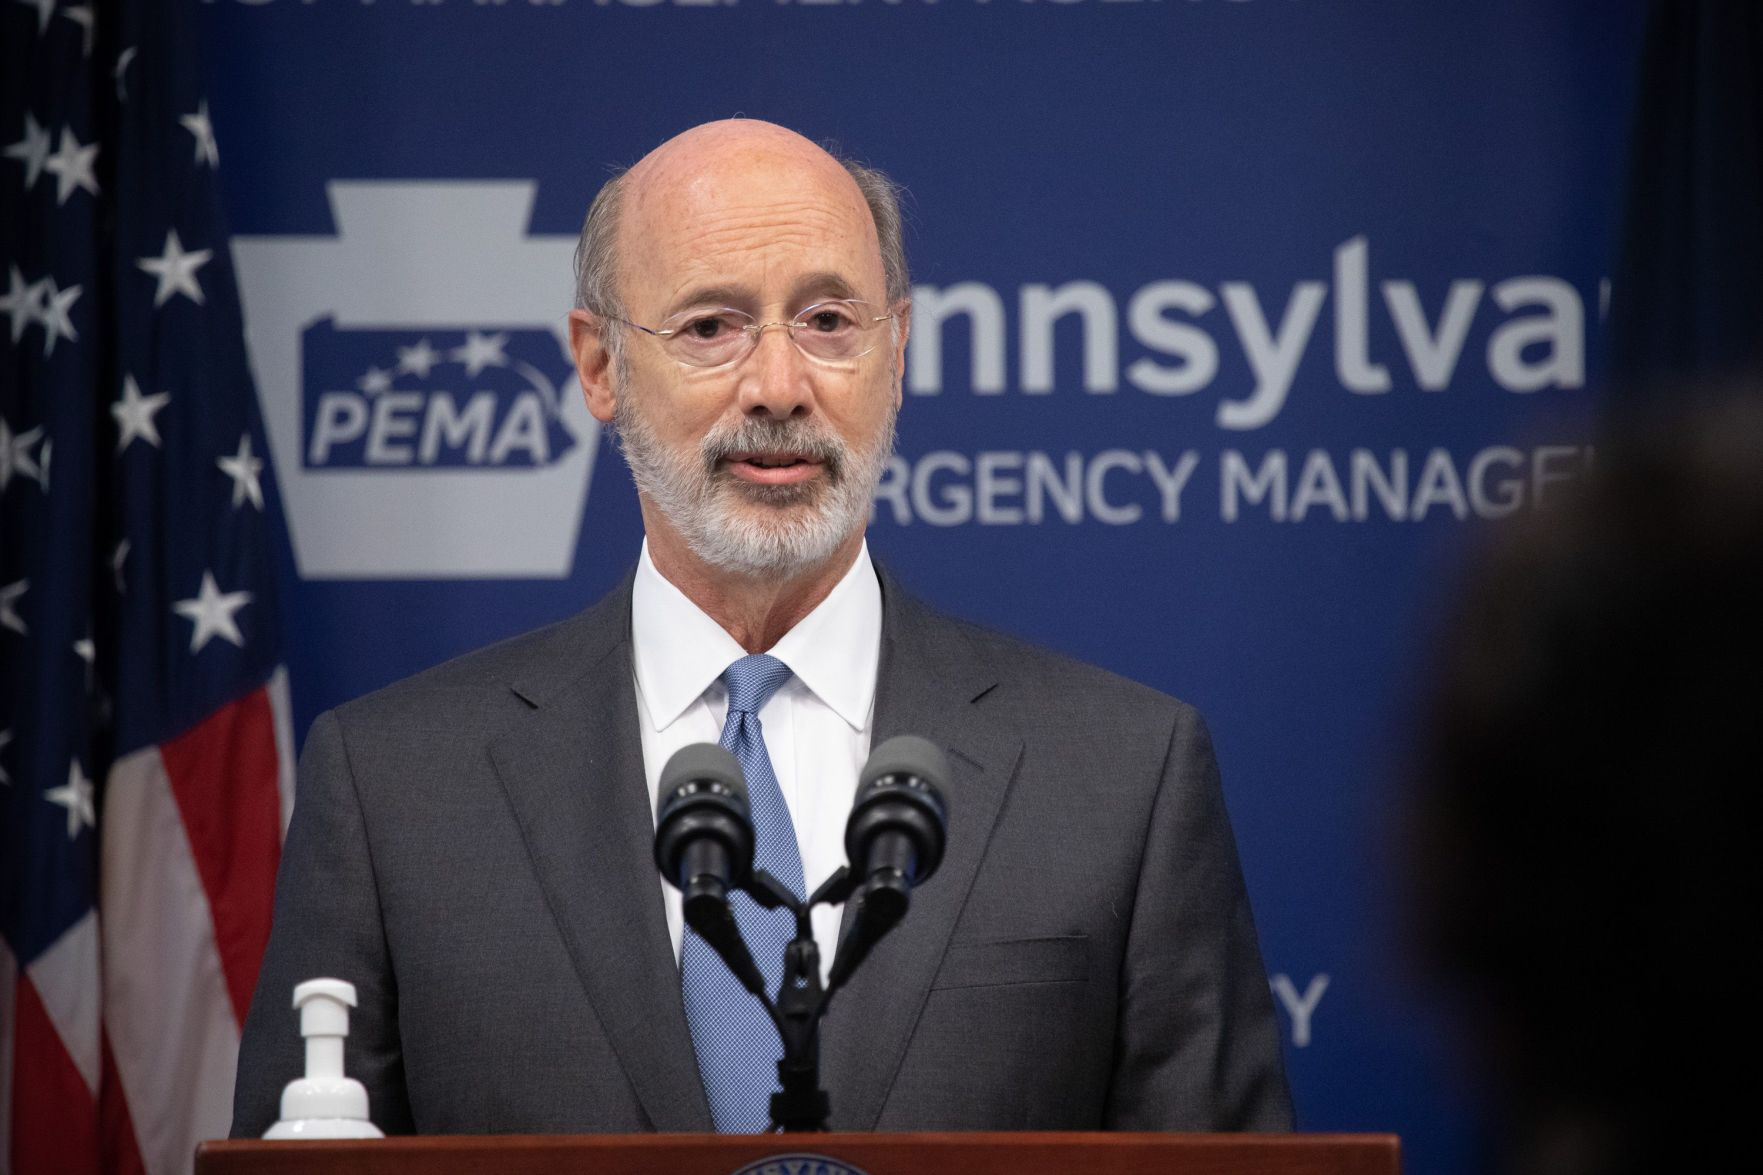 Wolf touts financial benefits of climate change partnerships; lawmakers move to bar participation without their OK